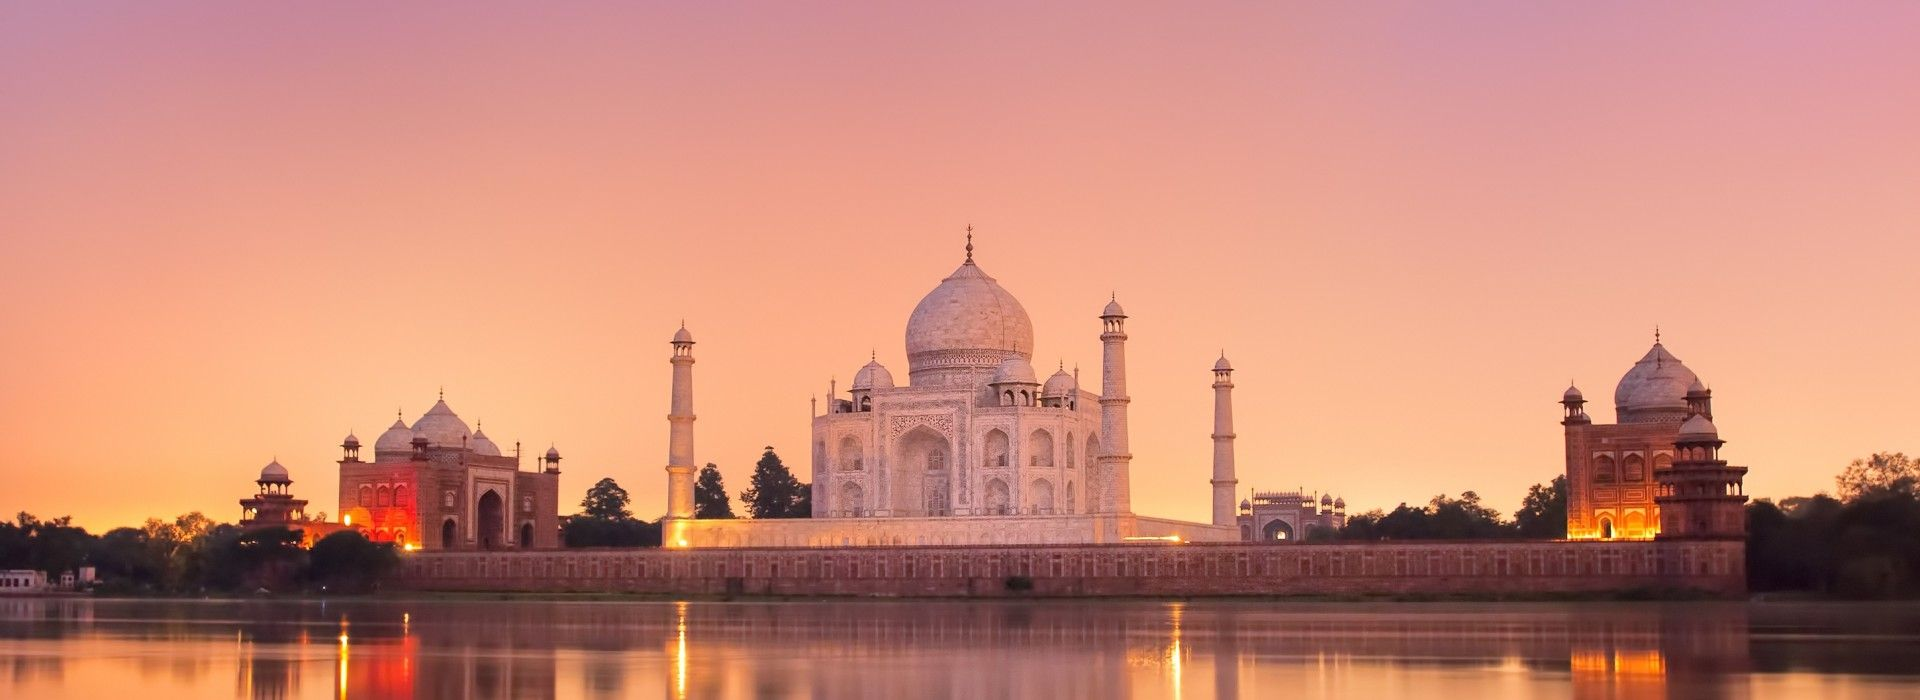 Beach, romance, getaways and relaxation Tours in India